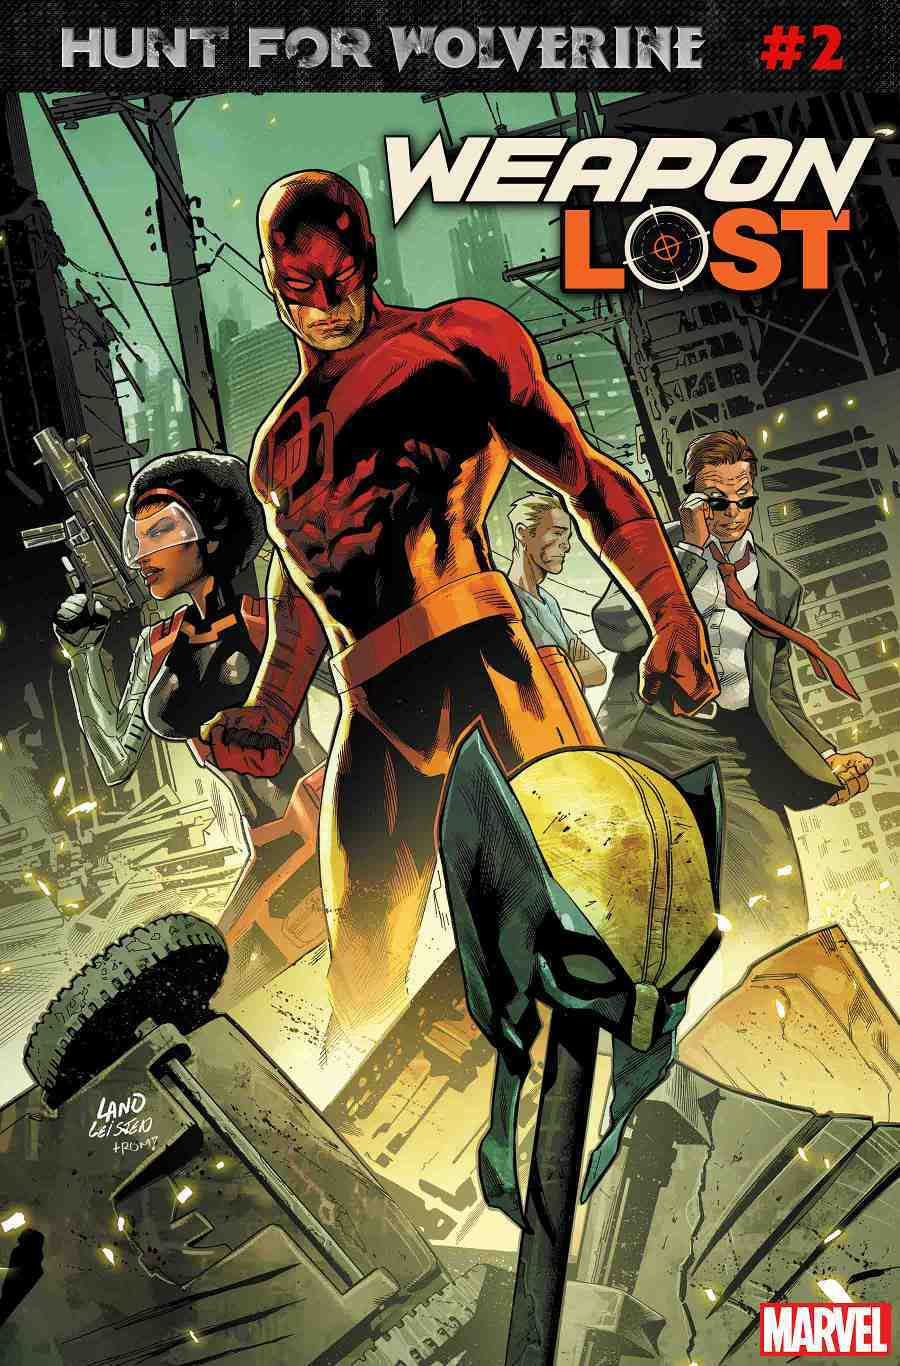 hunt-for-wolverine-weapon-lost-2-1093580-1